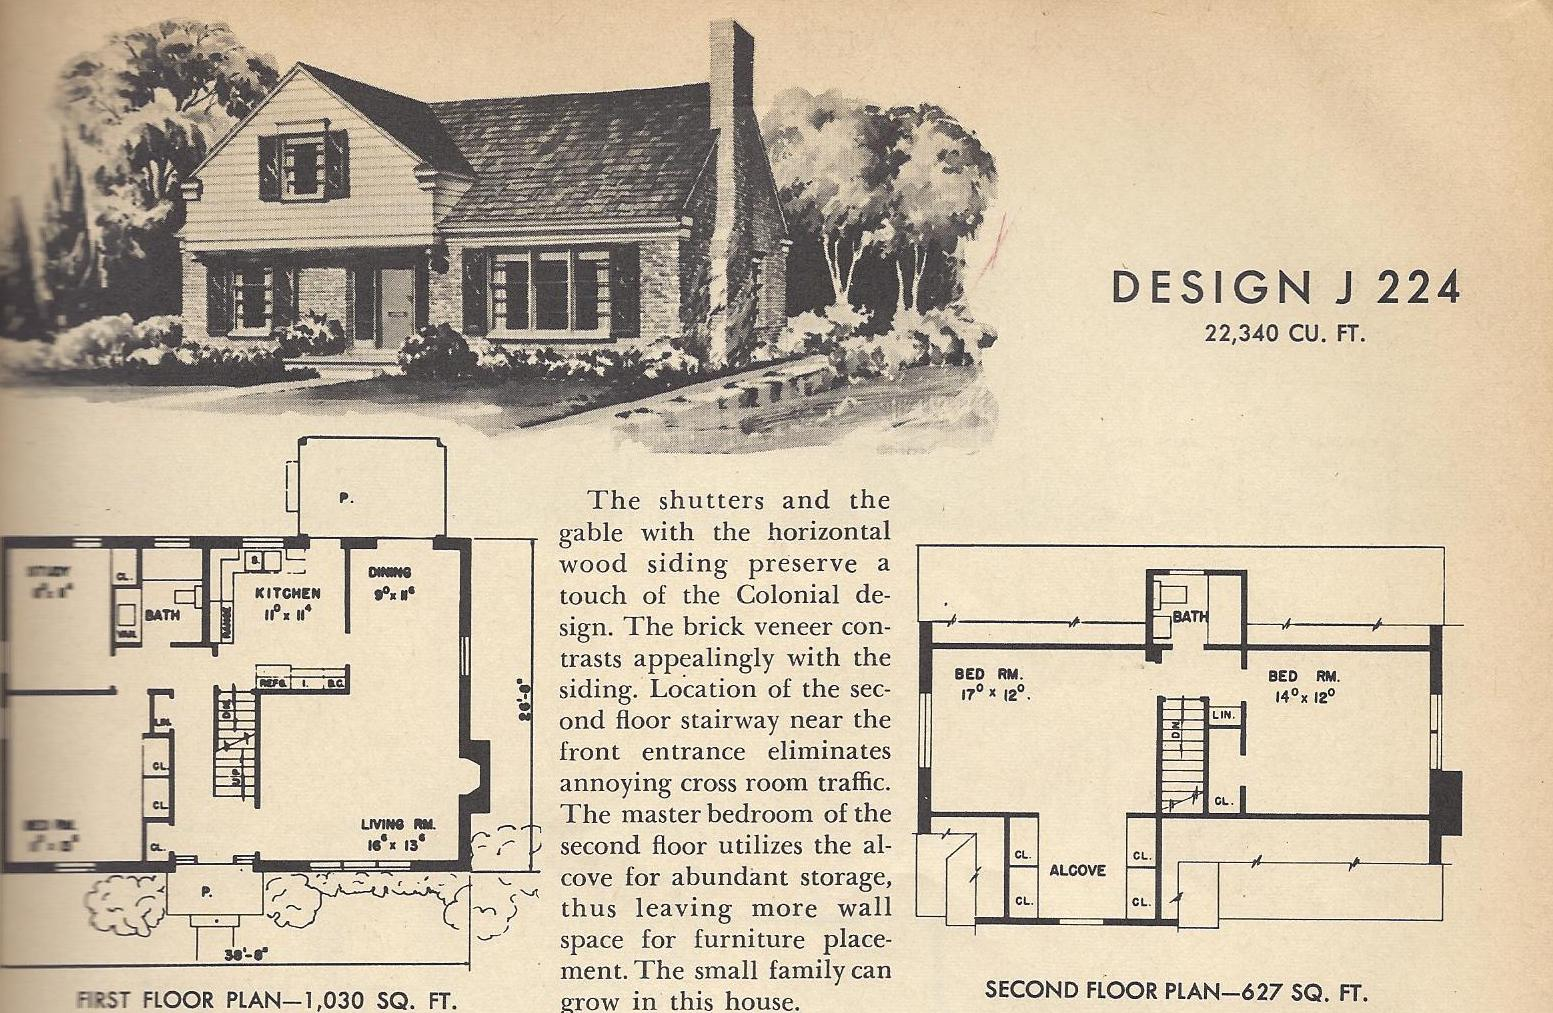 Vintage house plans j224 antique alter ego - Retro home design ...